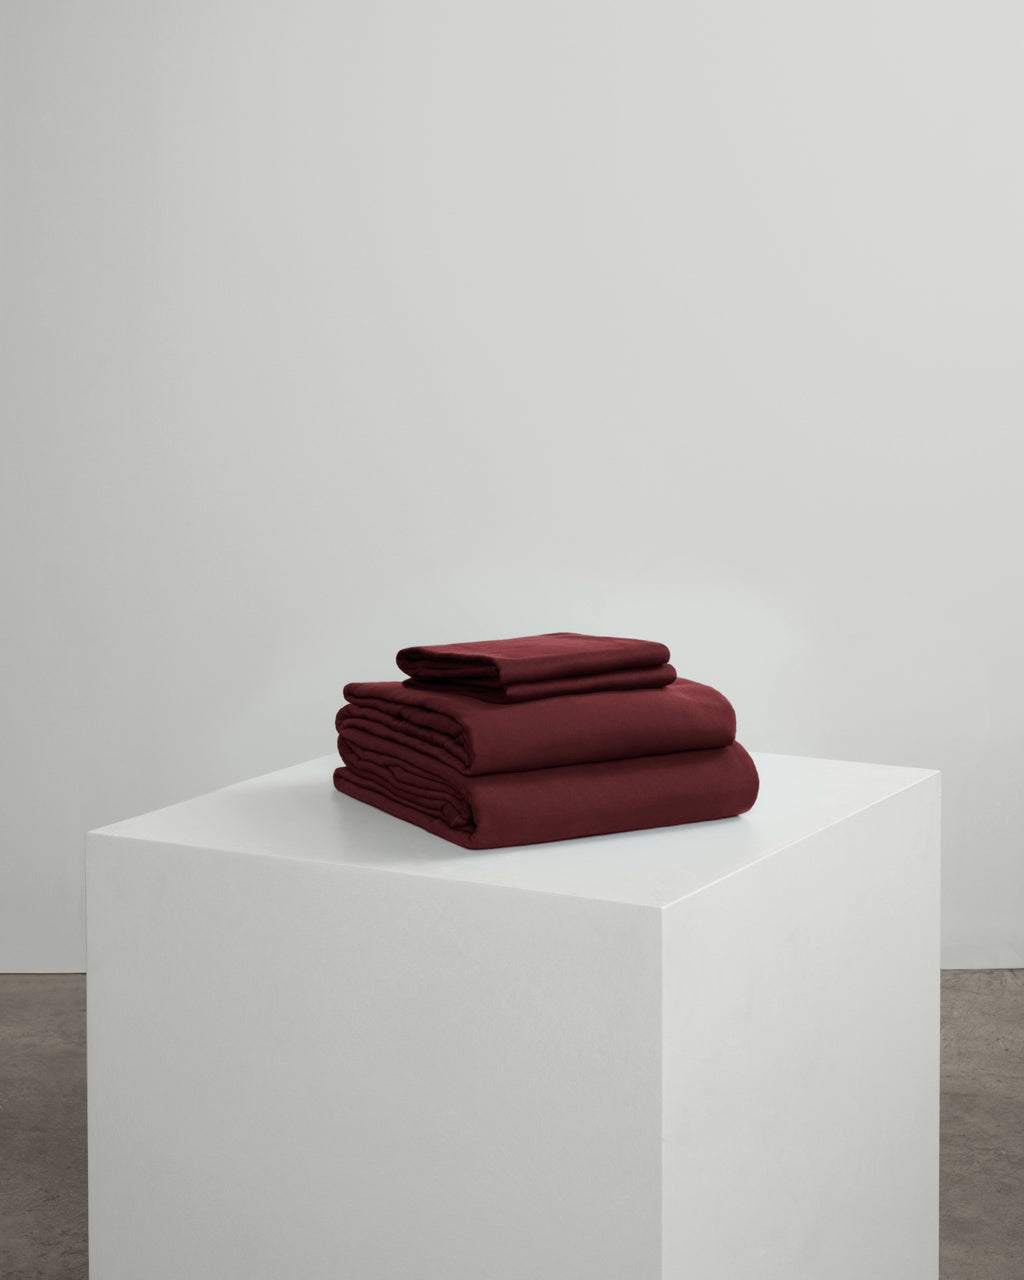 Burgundy full bedding set including a fitted sheet, duvet cover and pillowcases